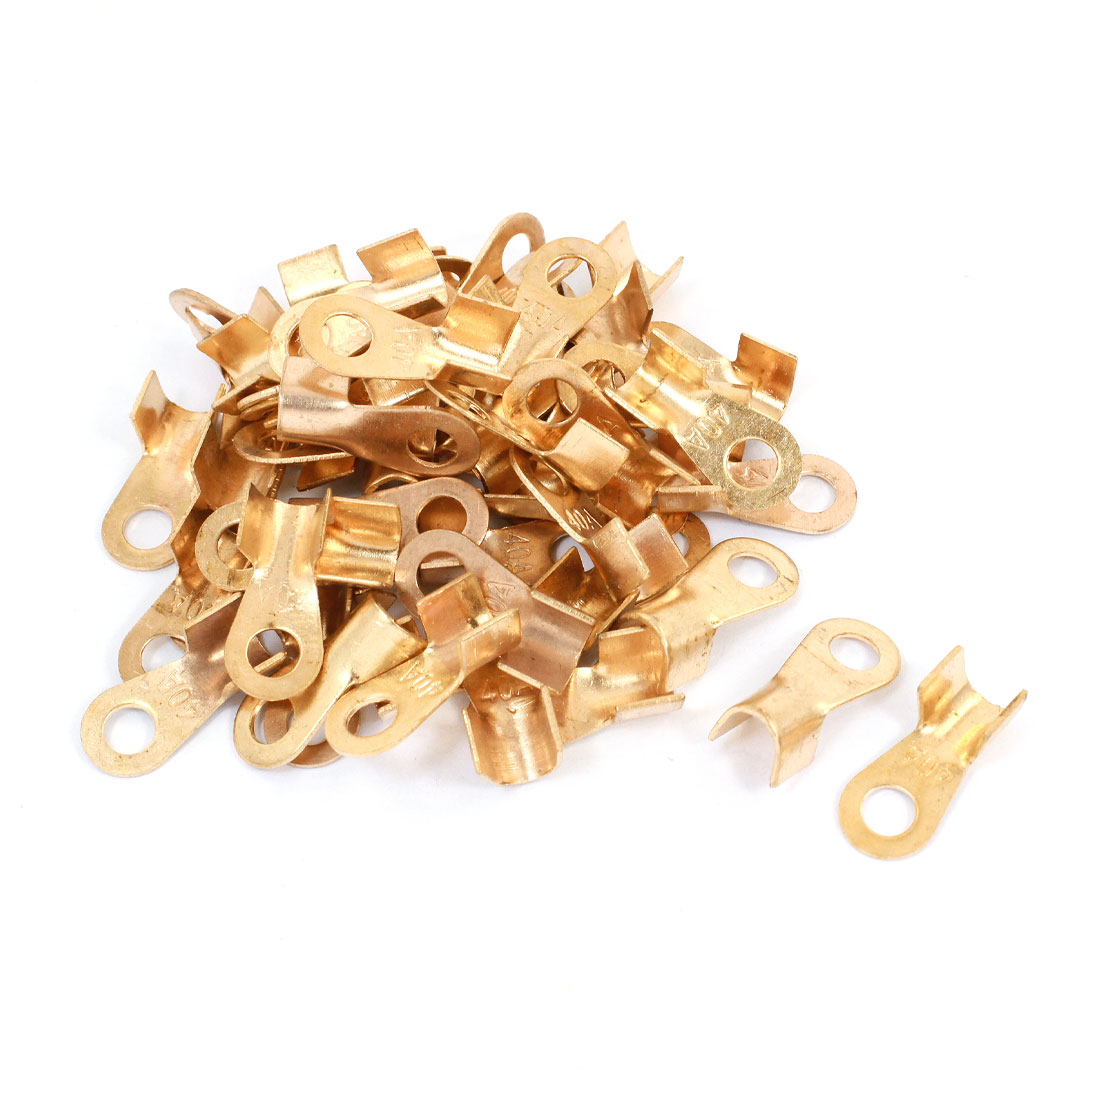 50 Pcs 40A Open Cable Connector Ring Tongue Copper Passing Through Terminals